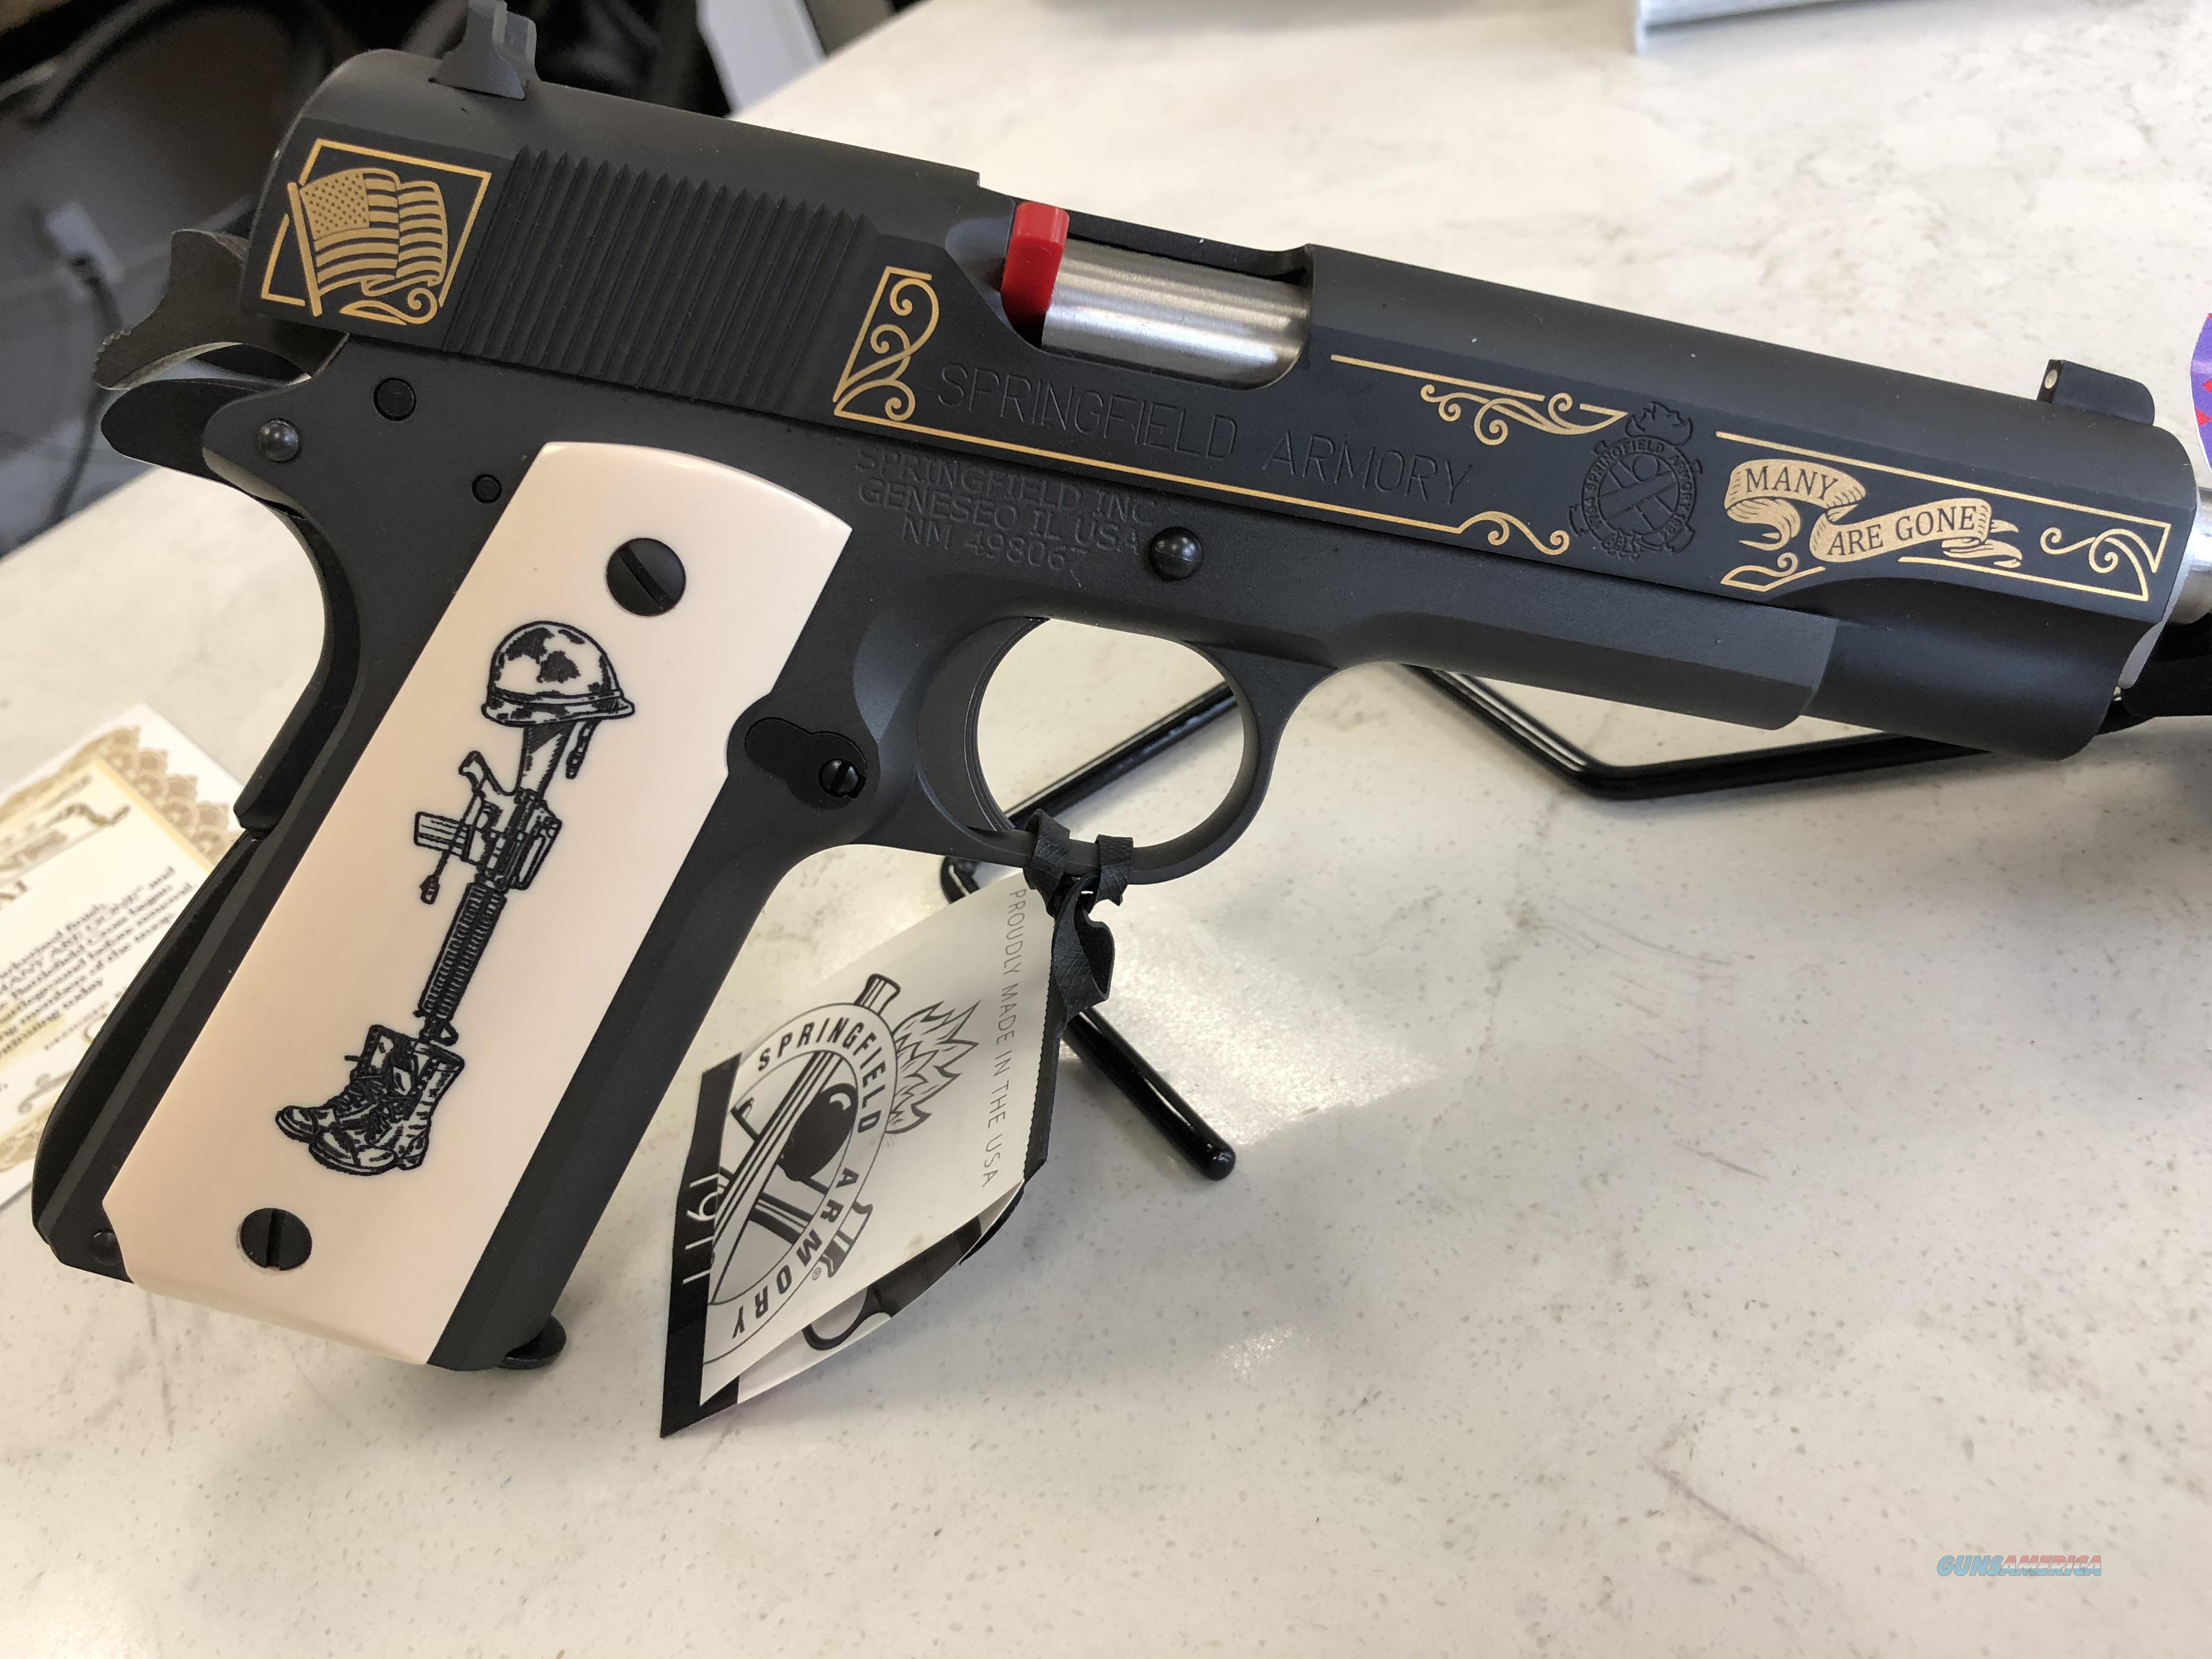 Limited Edition Springfield 1911-A1 Battlefield Cross  Guns > Pistols > Springfield Armory Pistols > 1911 Type